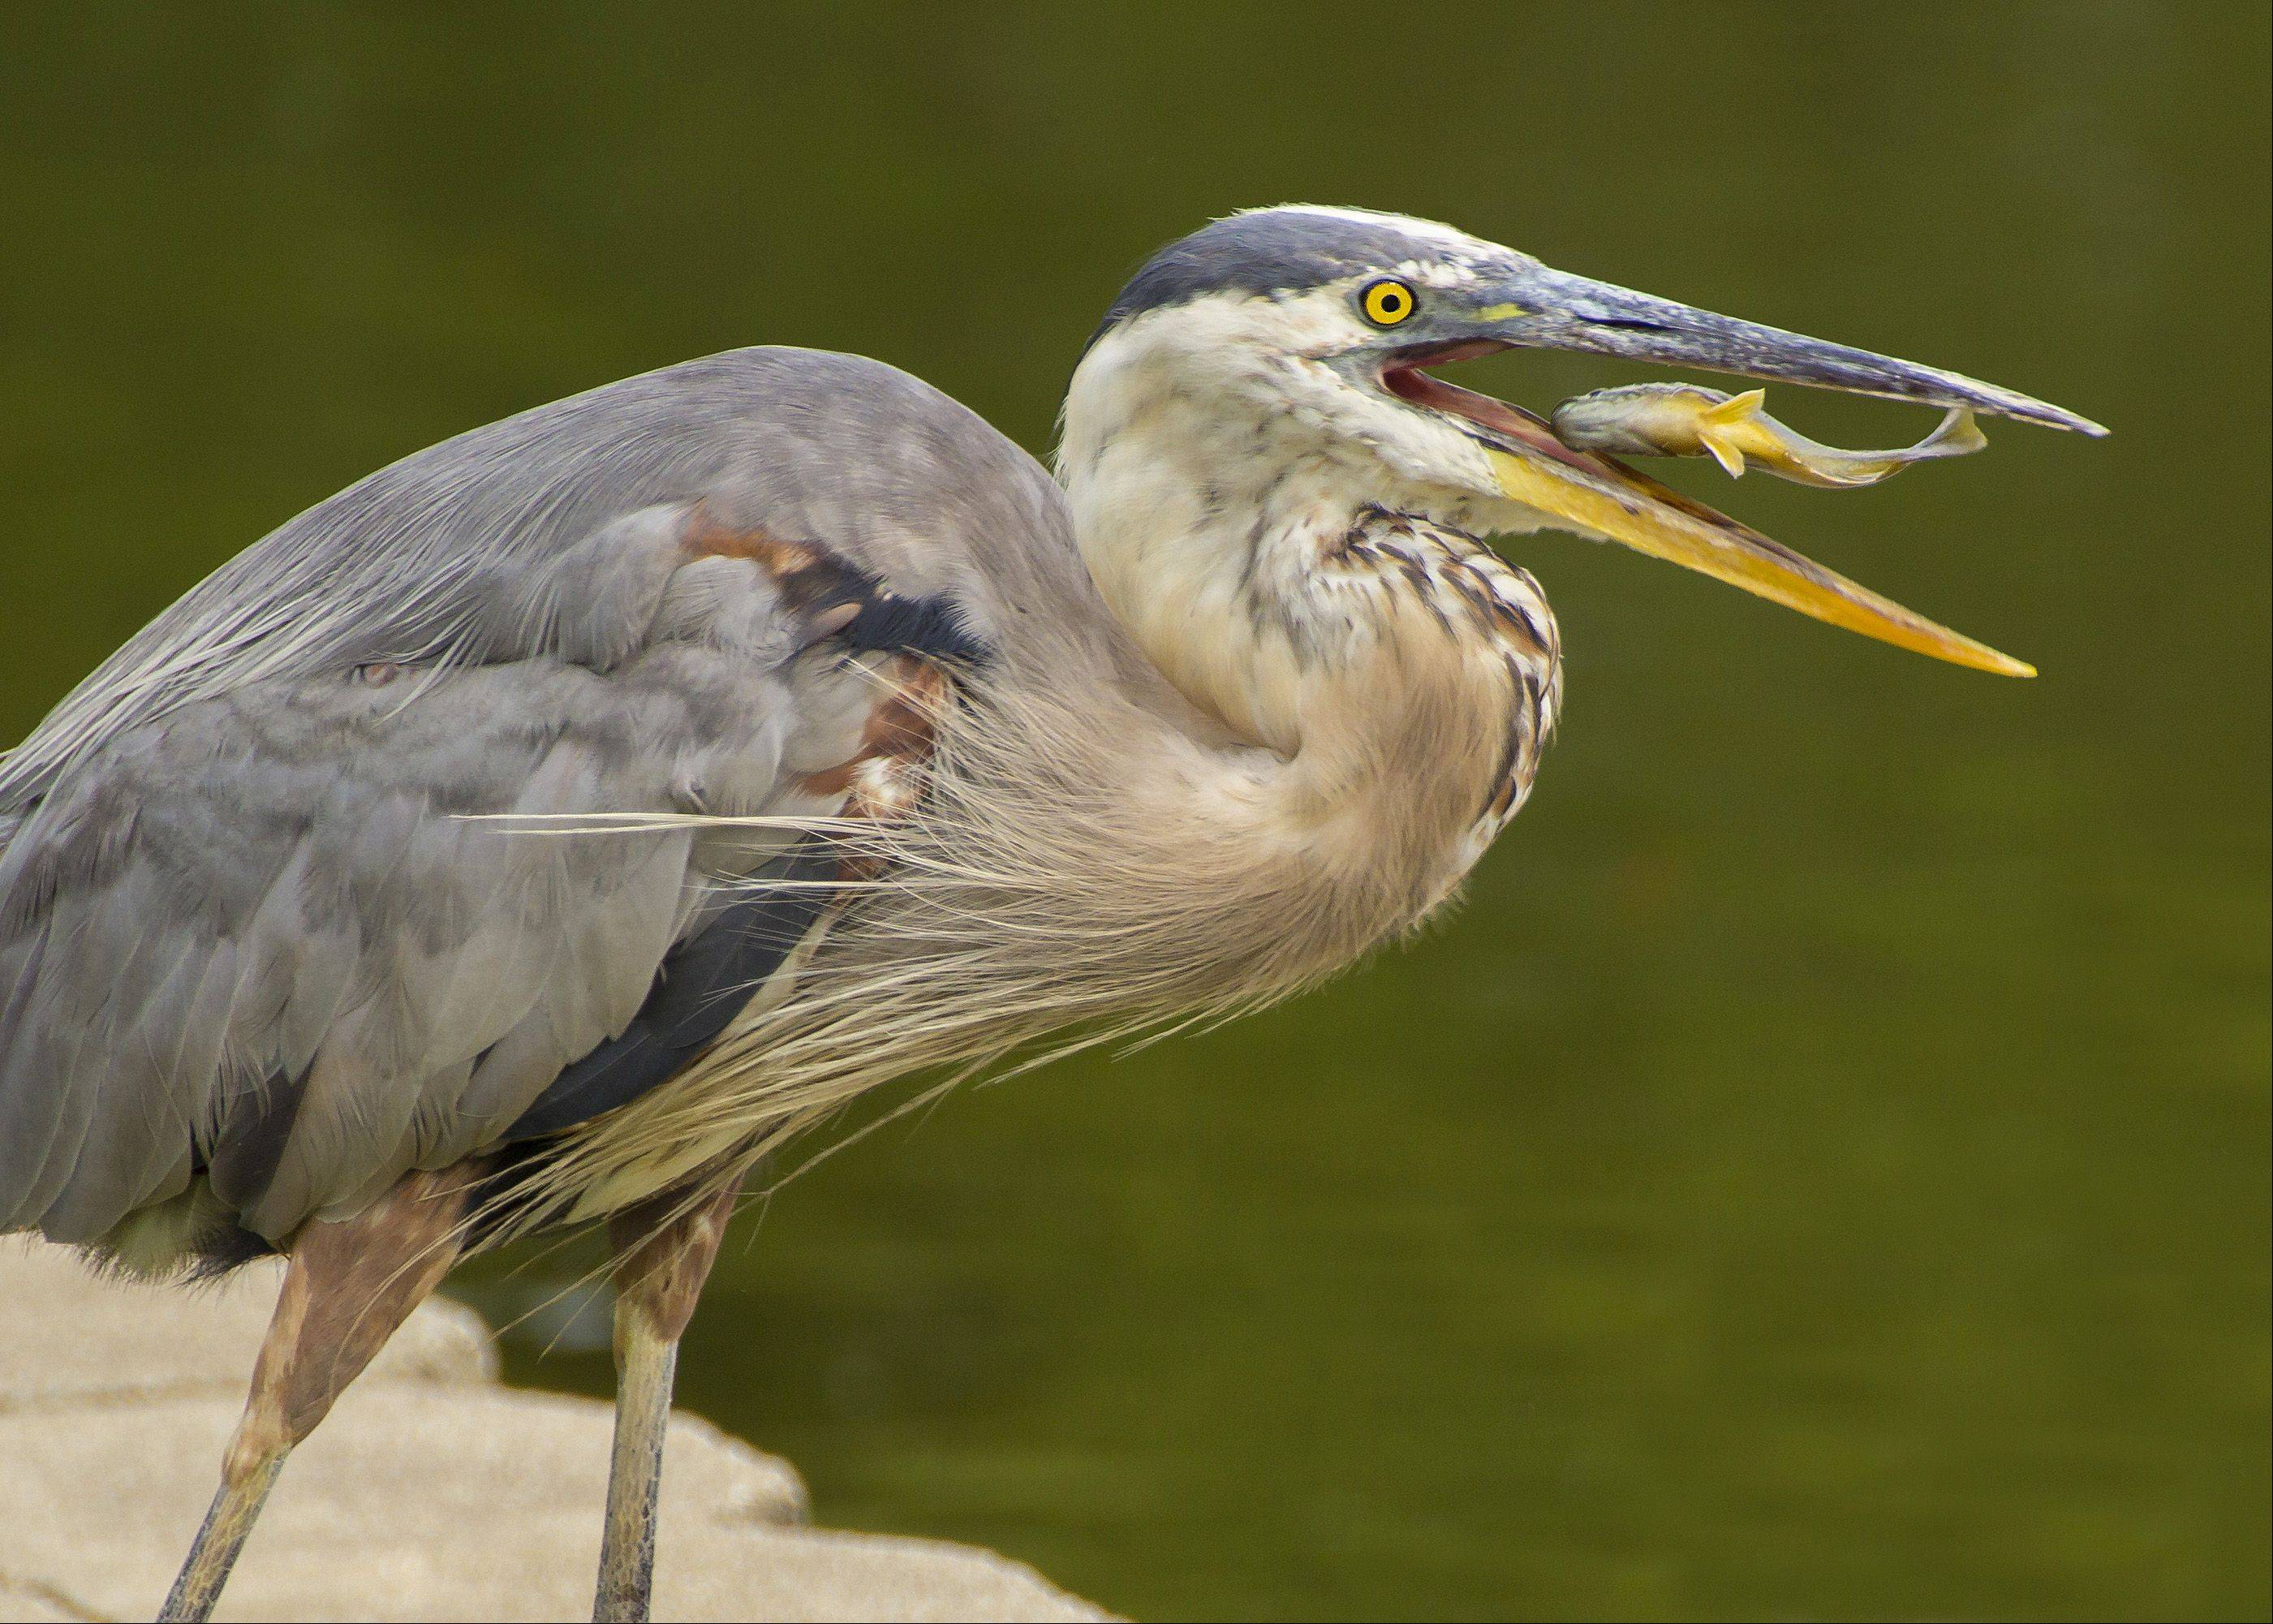 Brendan Durkin of Roselle took this picture of a heron at Turner Pond.